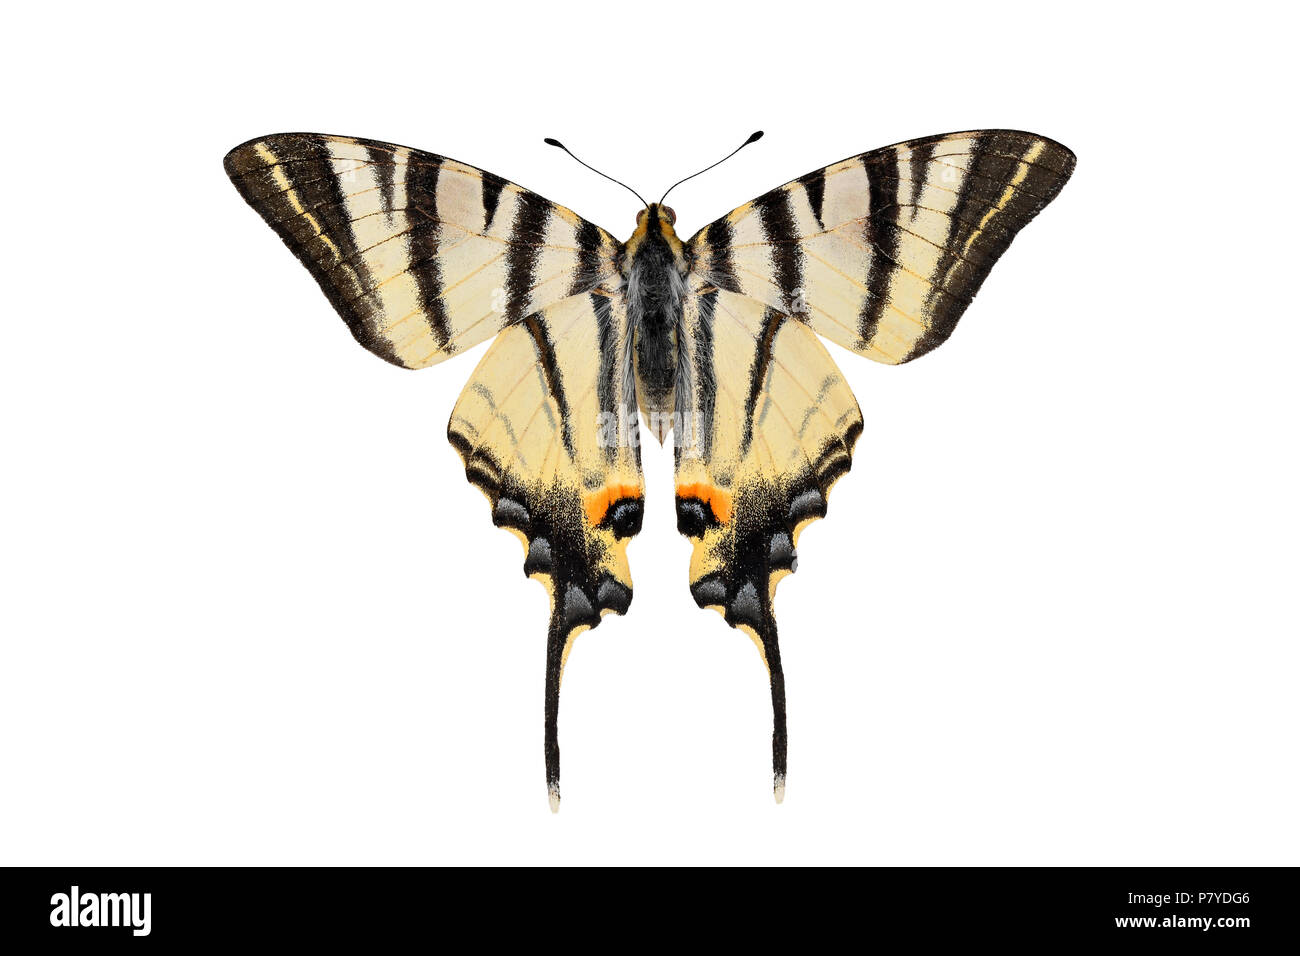 Scarce swallowtail butterfly, isolated on a white background - Stock Image